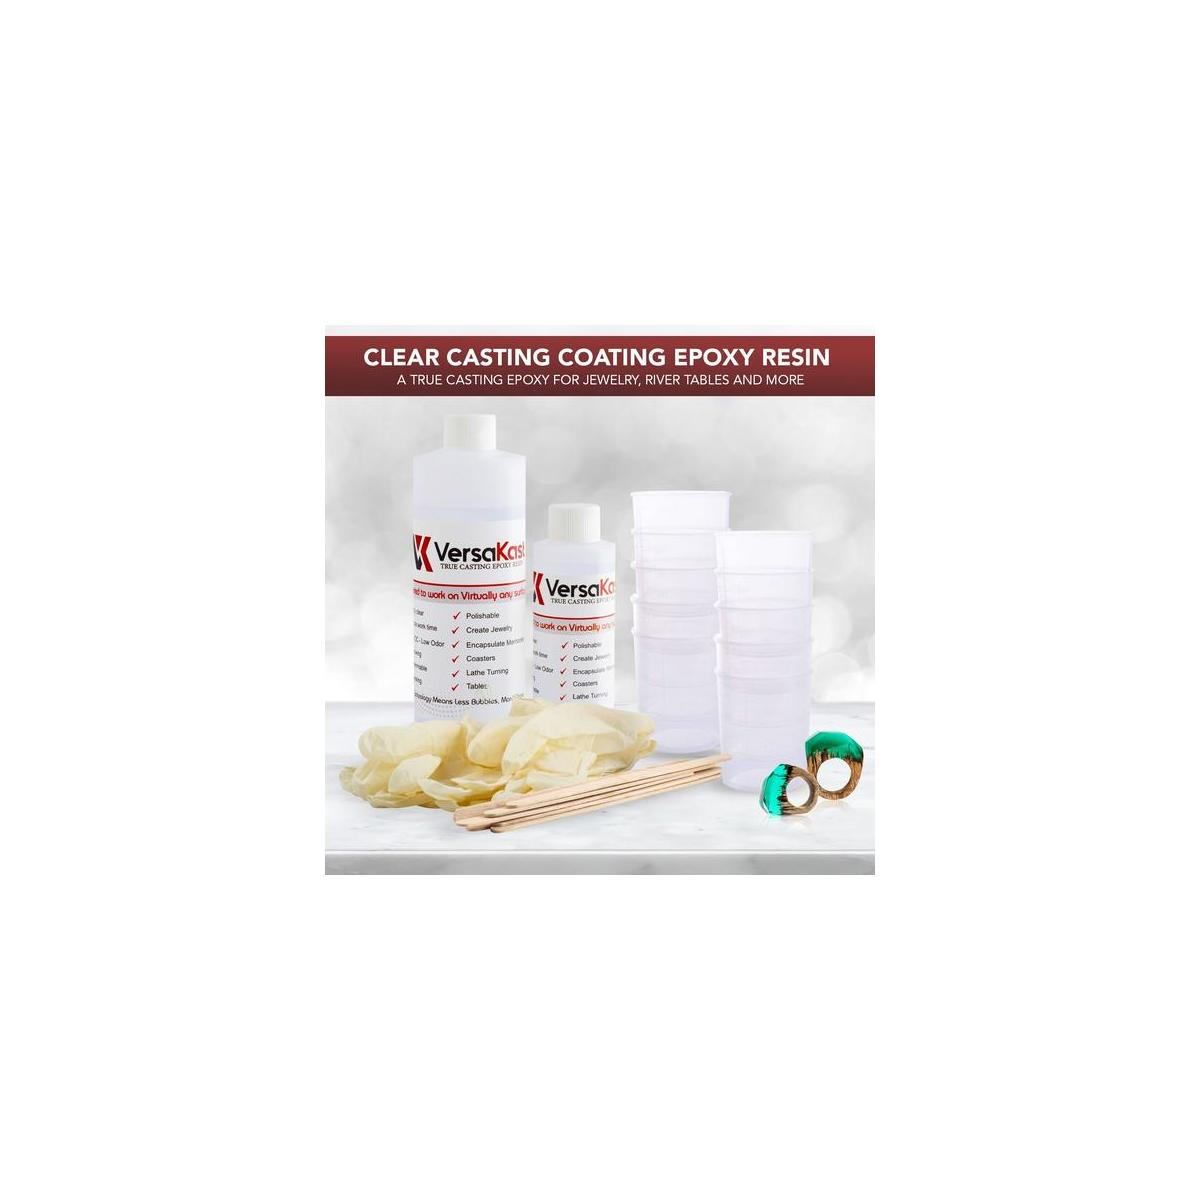 Casting Resin Epoxy Kit - 16 .oz -2 Part - Cutting Edge 3-to-1 Ratio Makes This Crack, Chip, UV Proof, Odorless - A True Casting Epoxy for Jewelry, River Tables and More